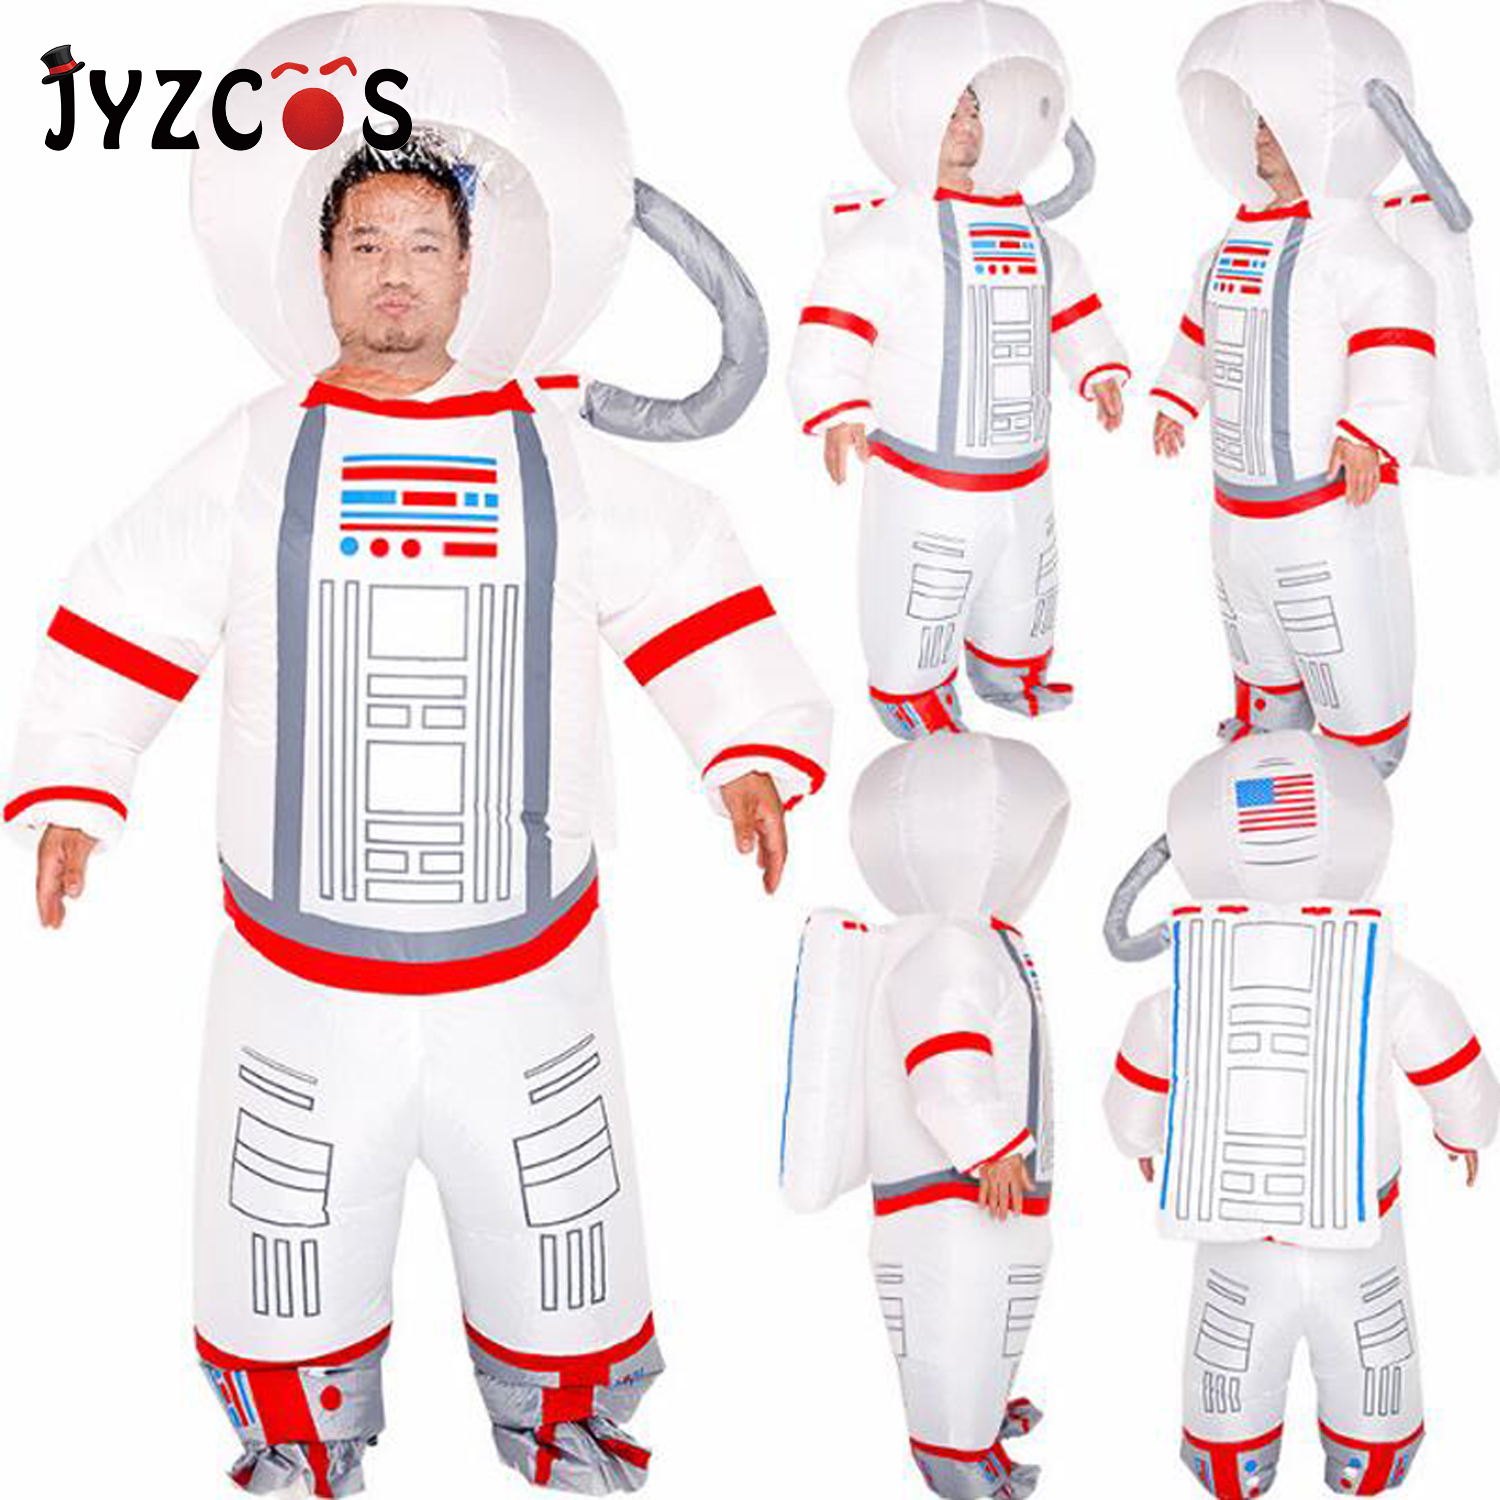 JYZCOS New Christmas Funny Purim Pilot Inflatable Suit Inflatable Astronaut Halloween Cospaly Costume Party Supplies For Adult